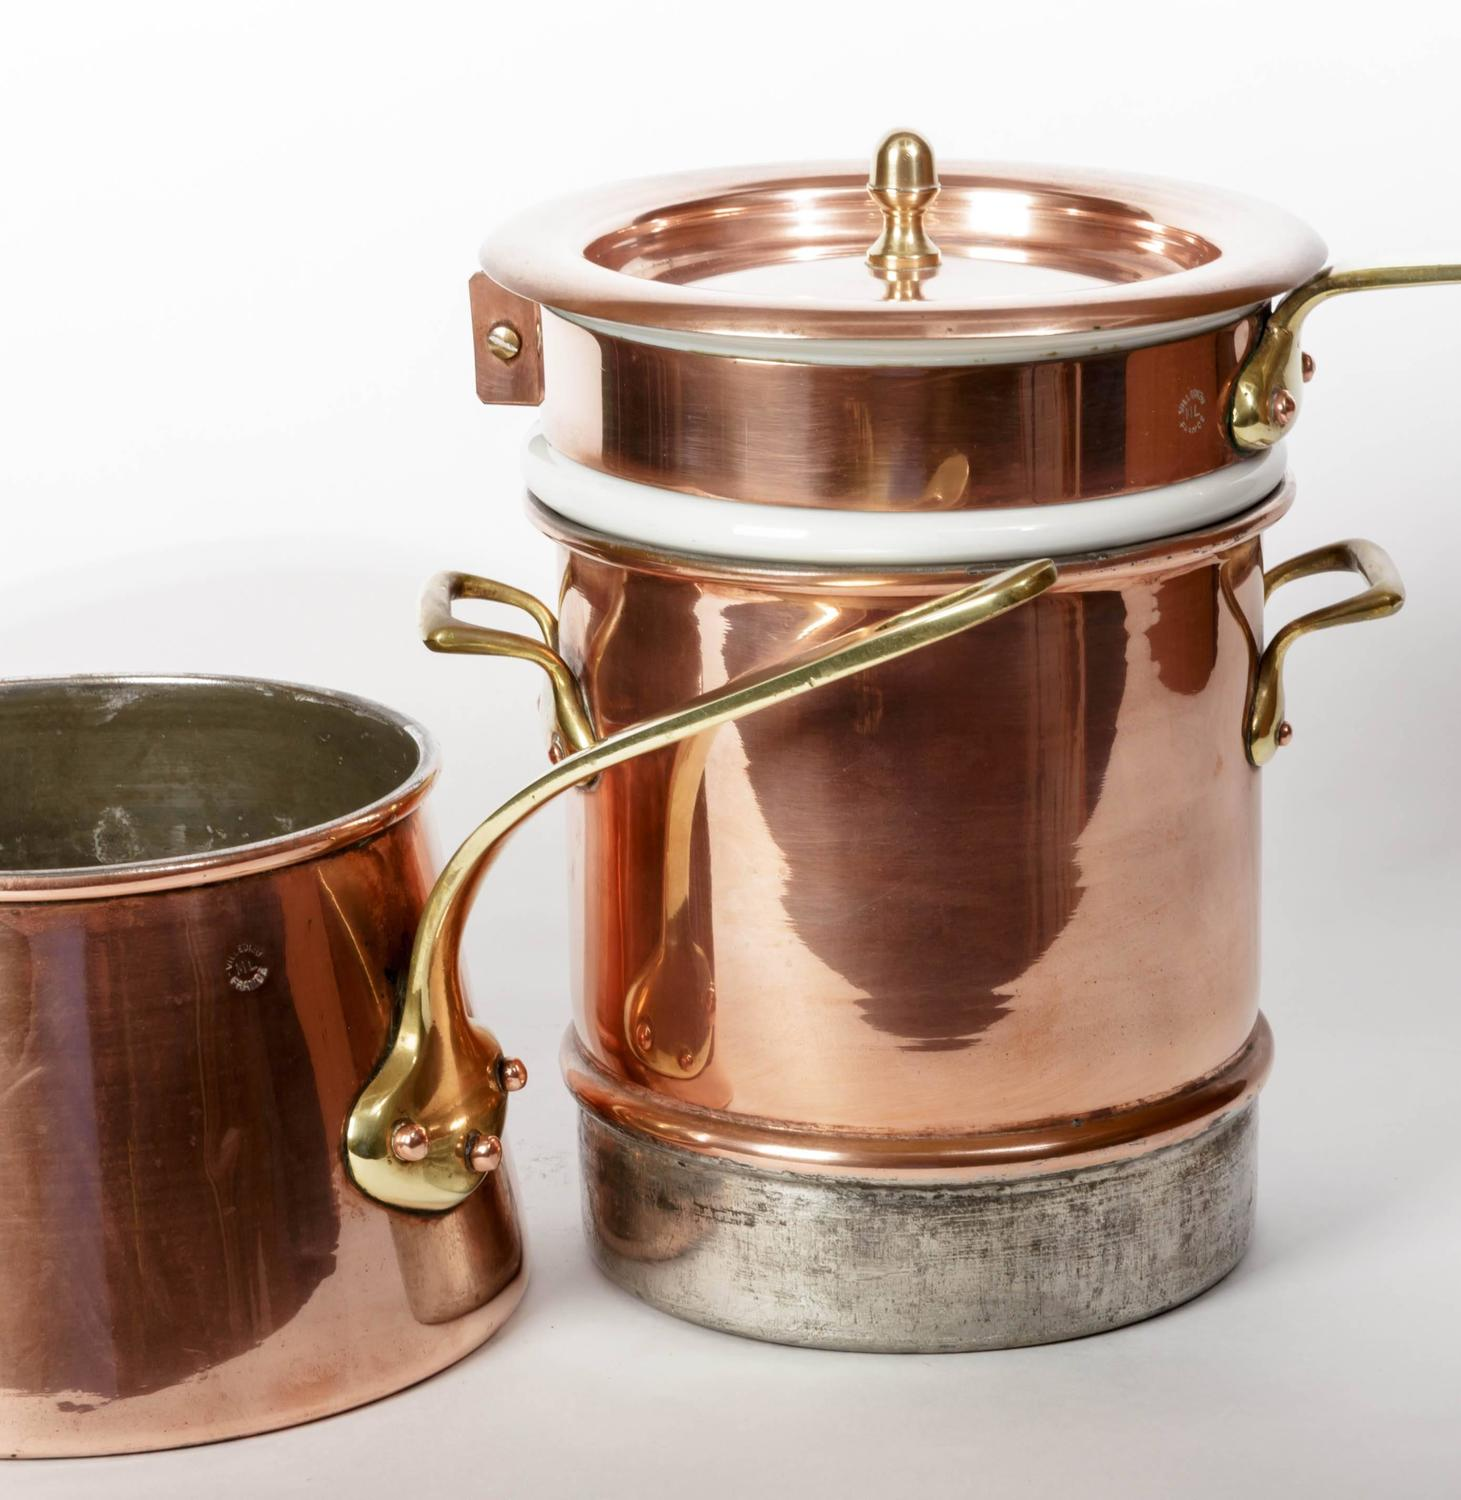 French Copper Steamer Double Boiler Quot Bain Marie Quot At 1stdibs